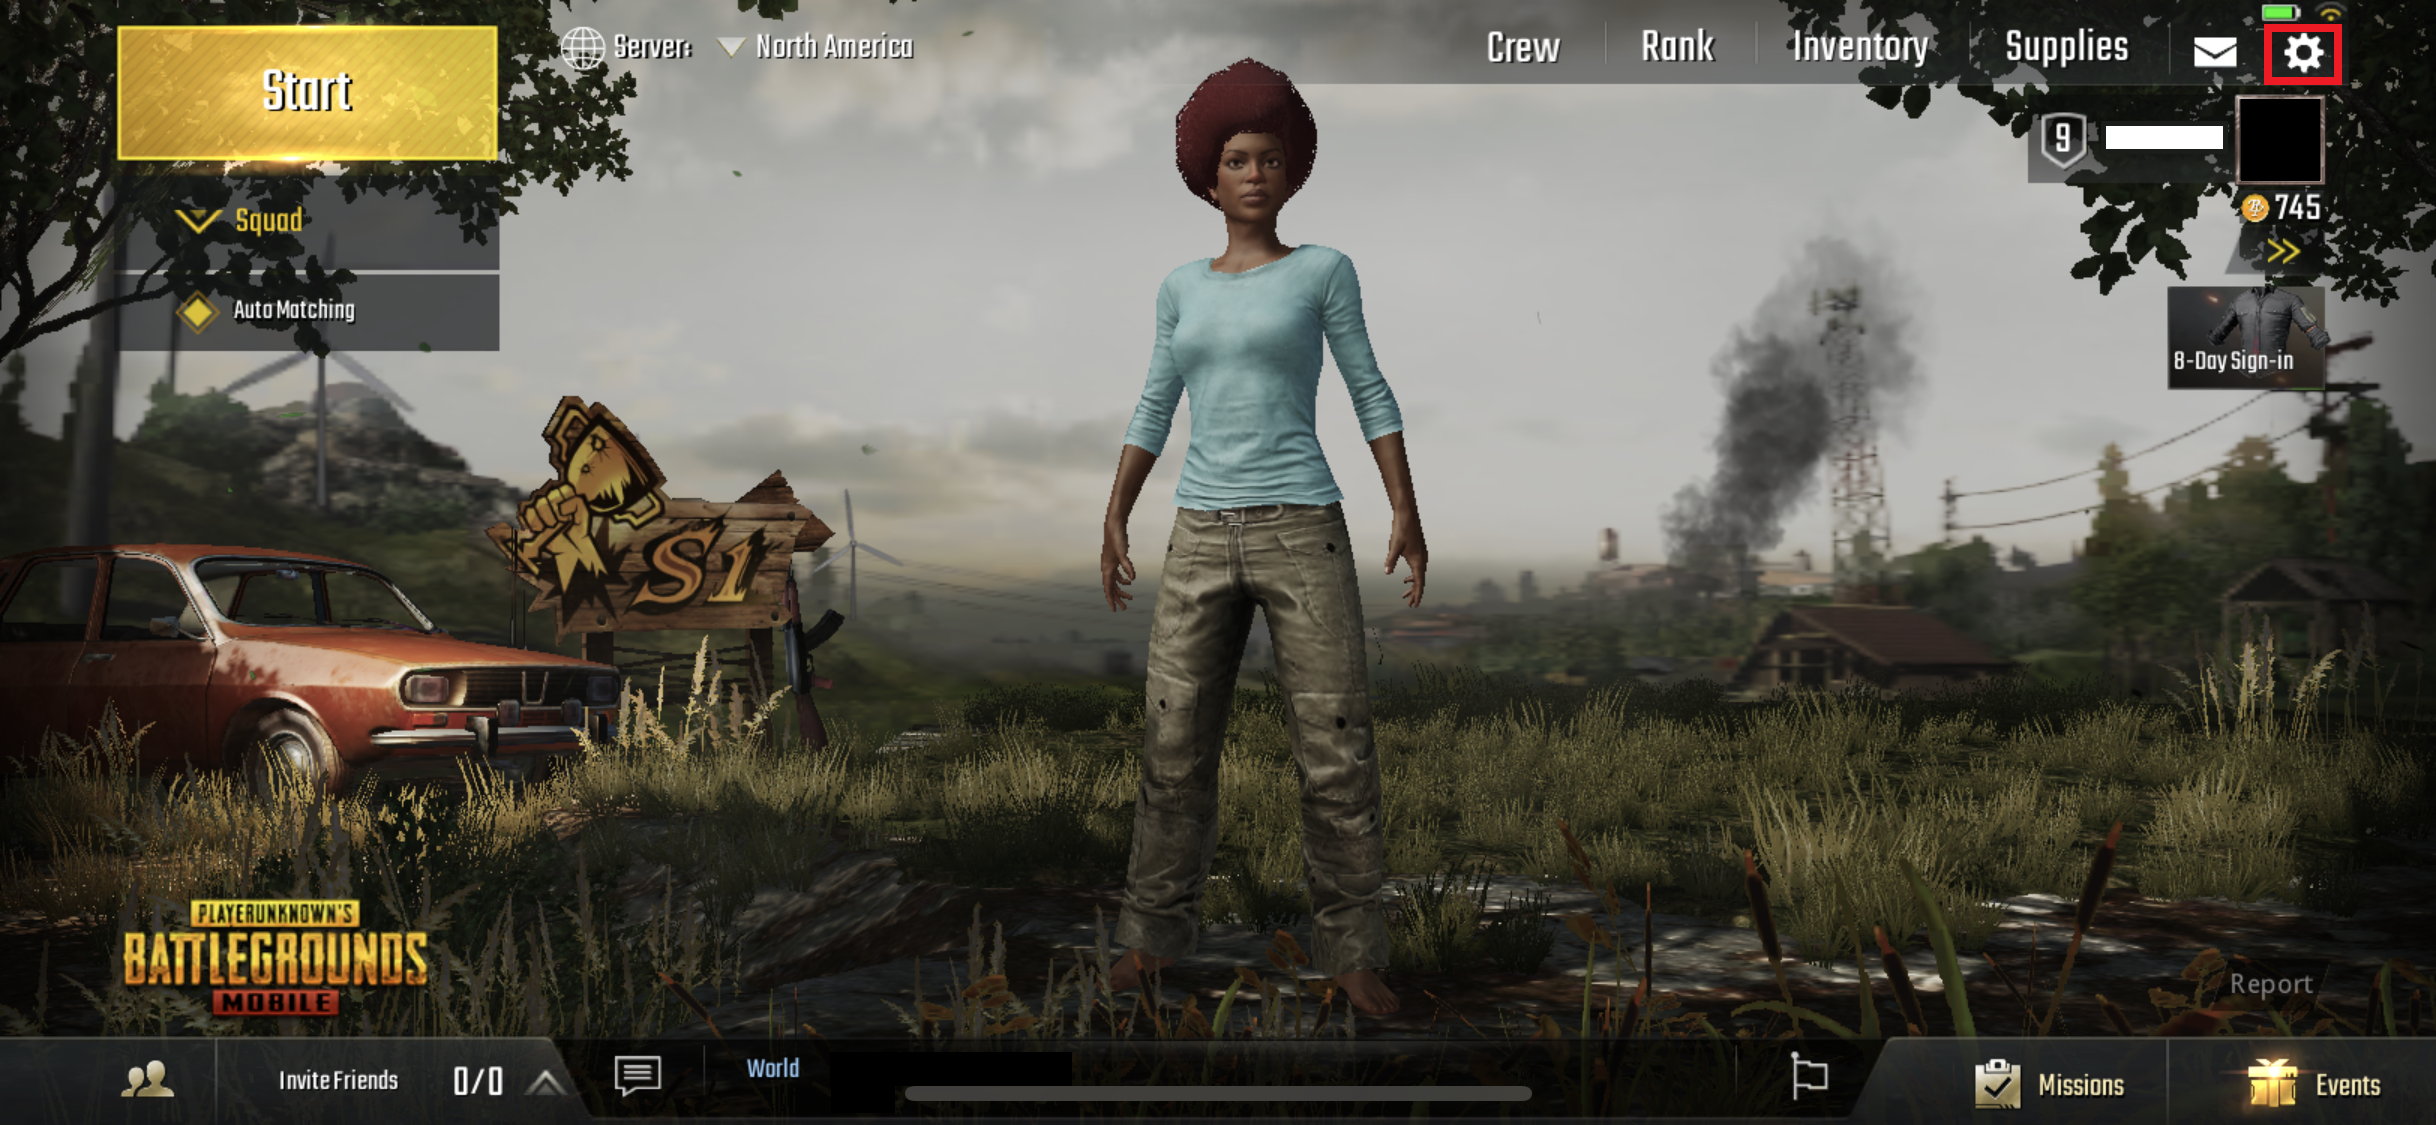 Pubg Gameplay On Line: PUBG Mobile Questions, Notices, And More